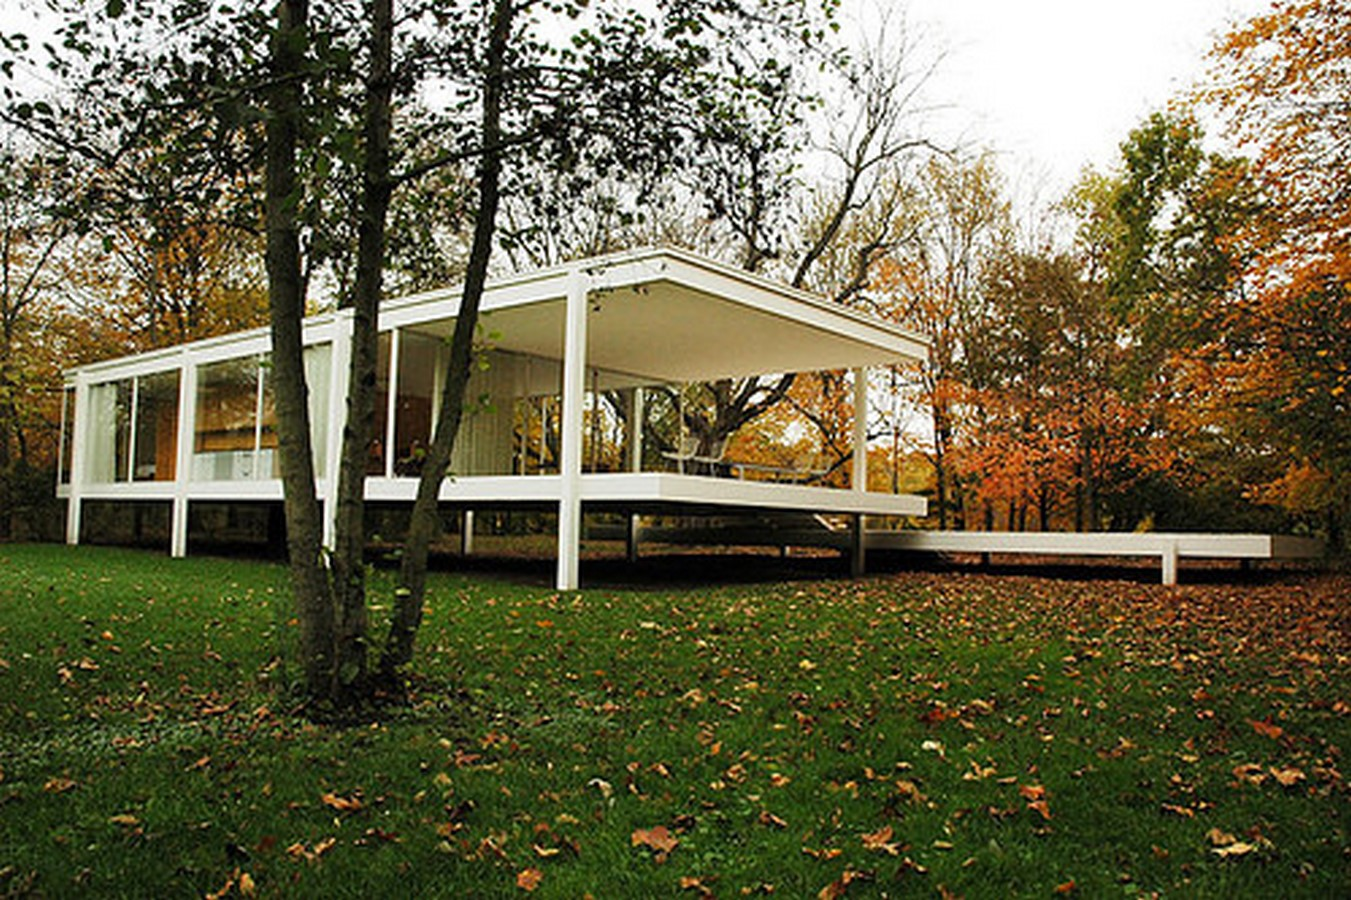 Farnsworth House by Mies van der Rohe: A bond between the House and Nature - Sheet5